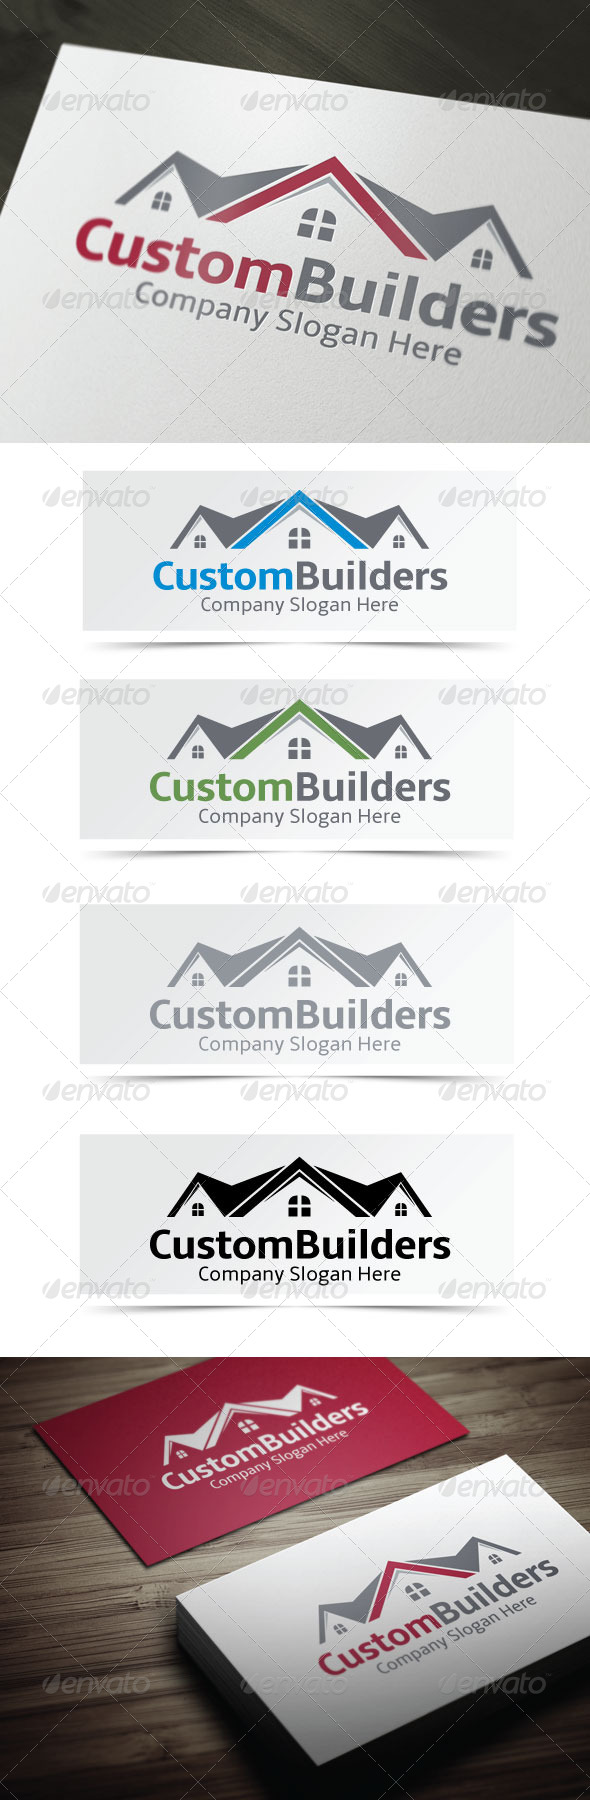 Custom Builders - Buildings Logo Templates